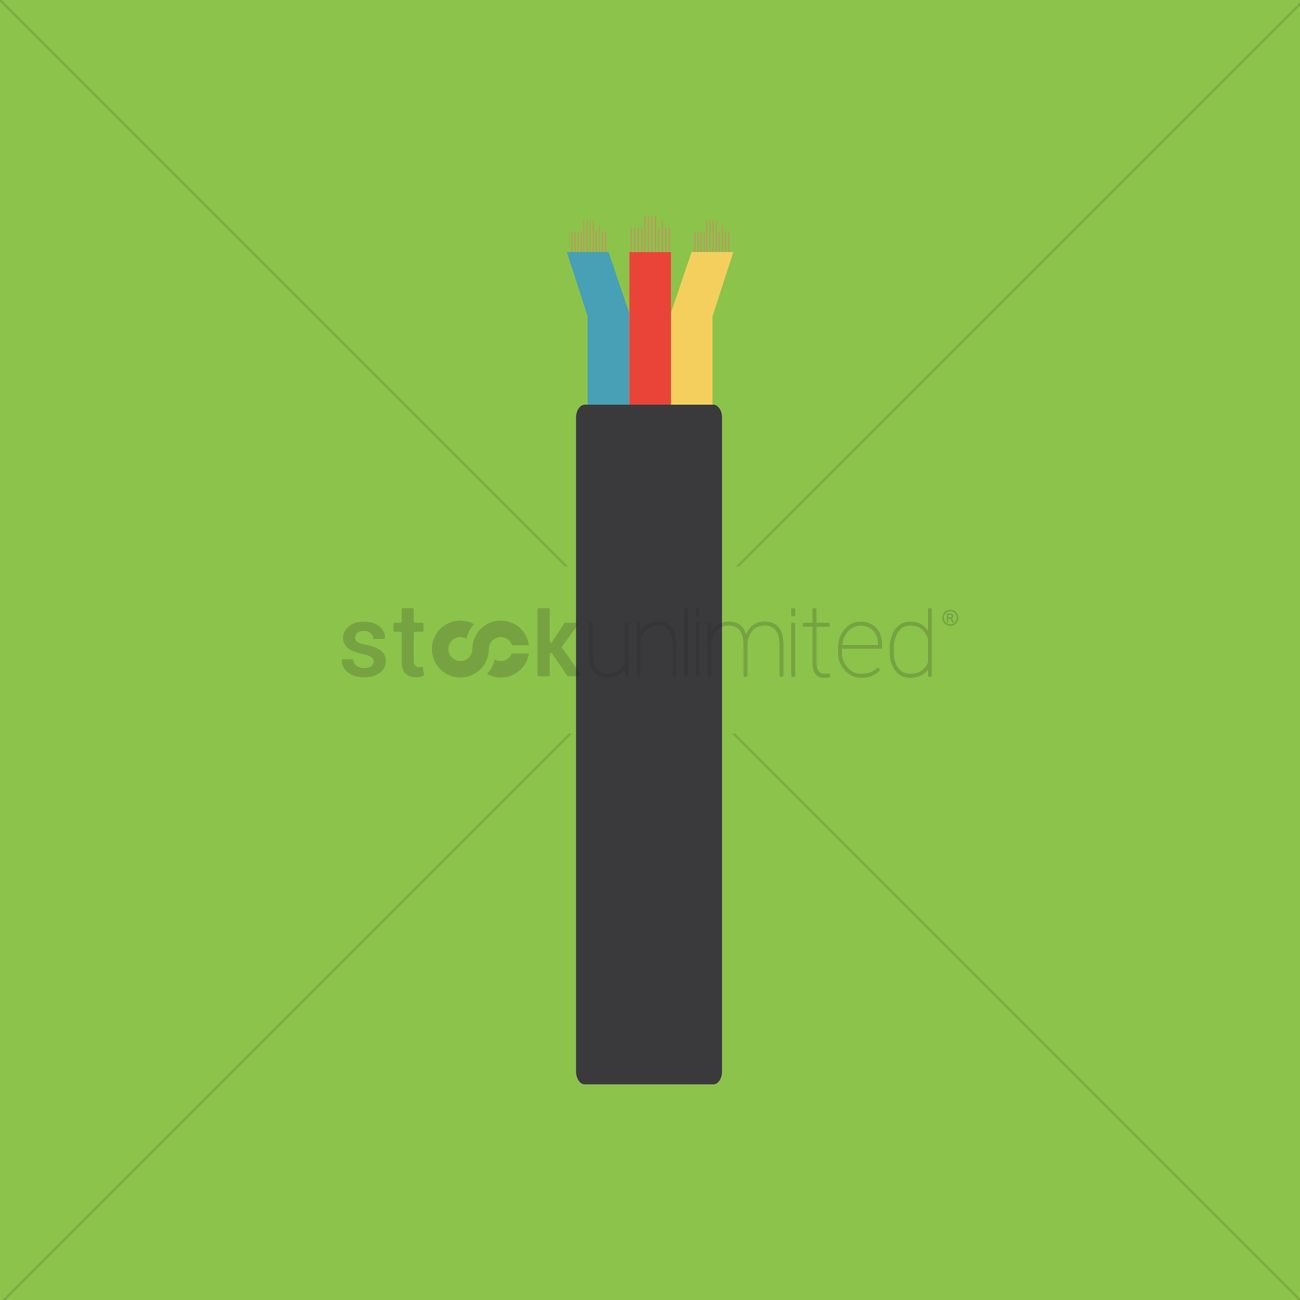 Electrical wire Vector Image - 1450177 | StockUnlimited